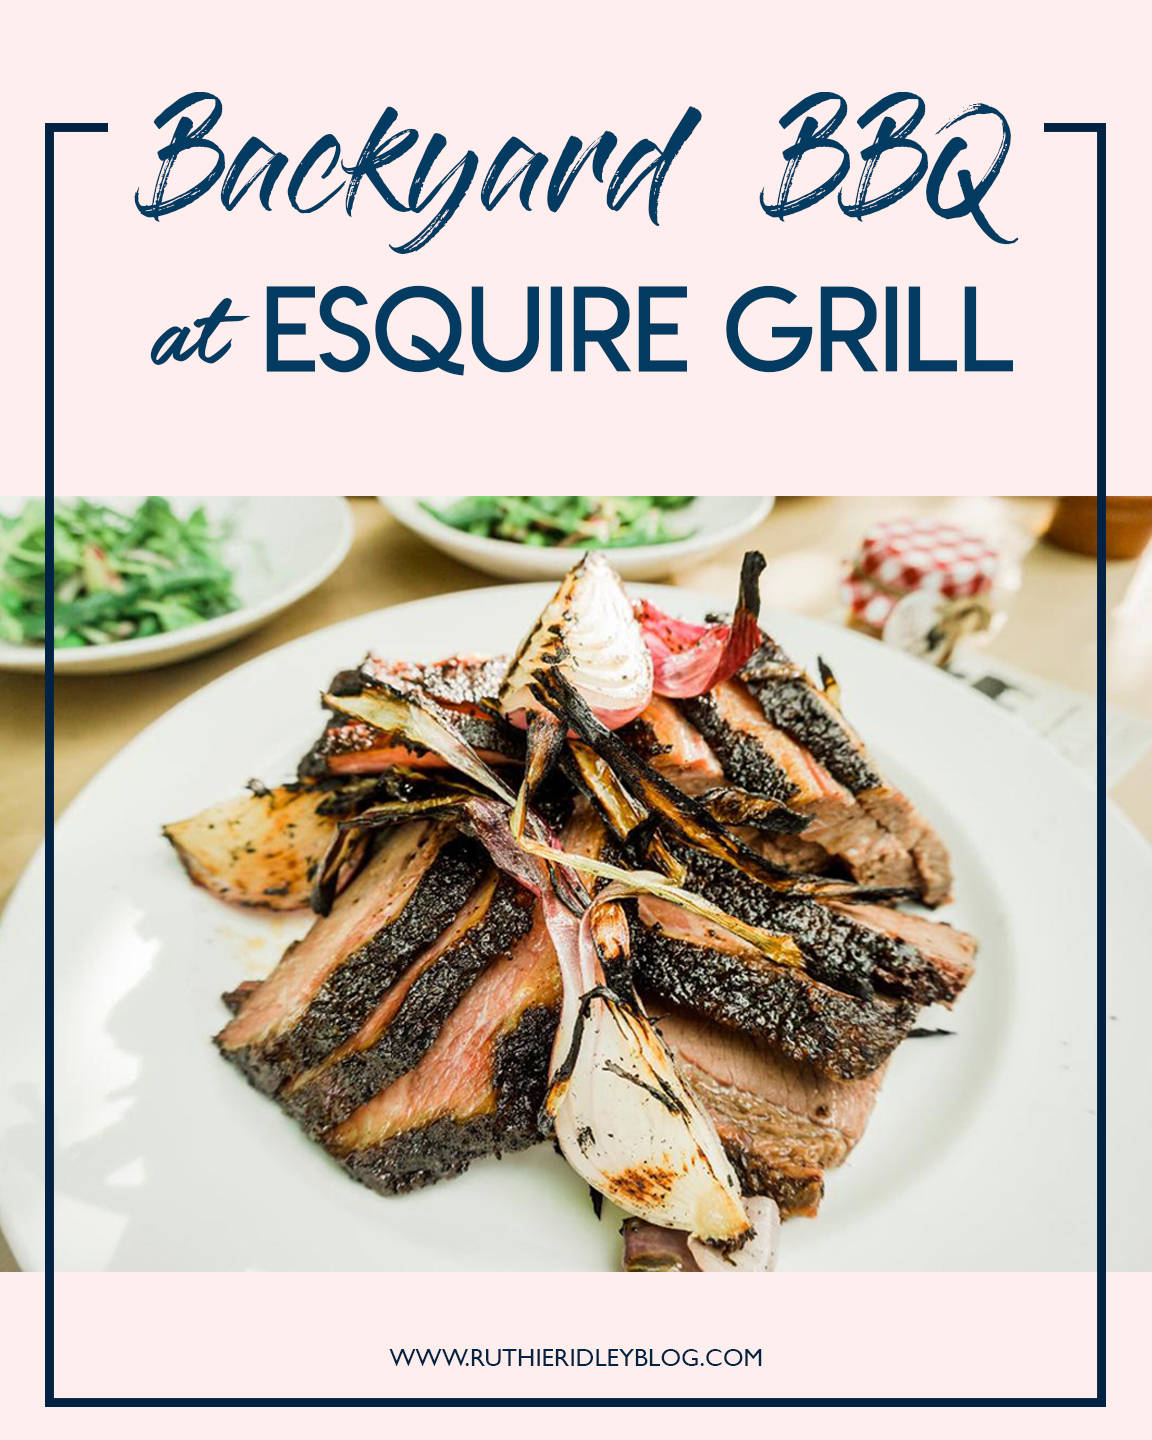 Chef Jon's Backyard Barbecue- Esquire Grill